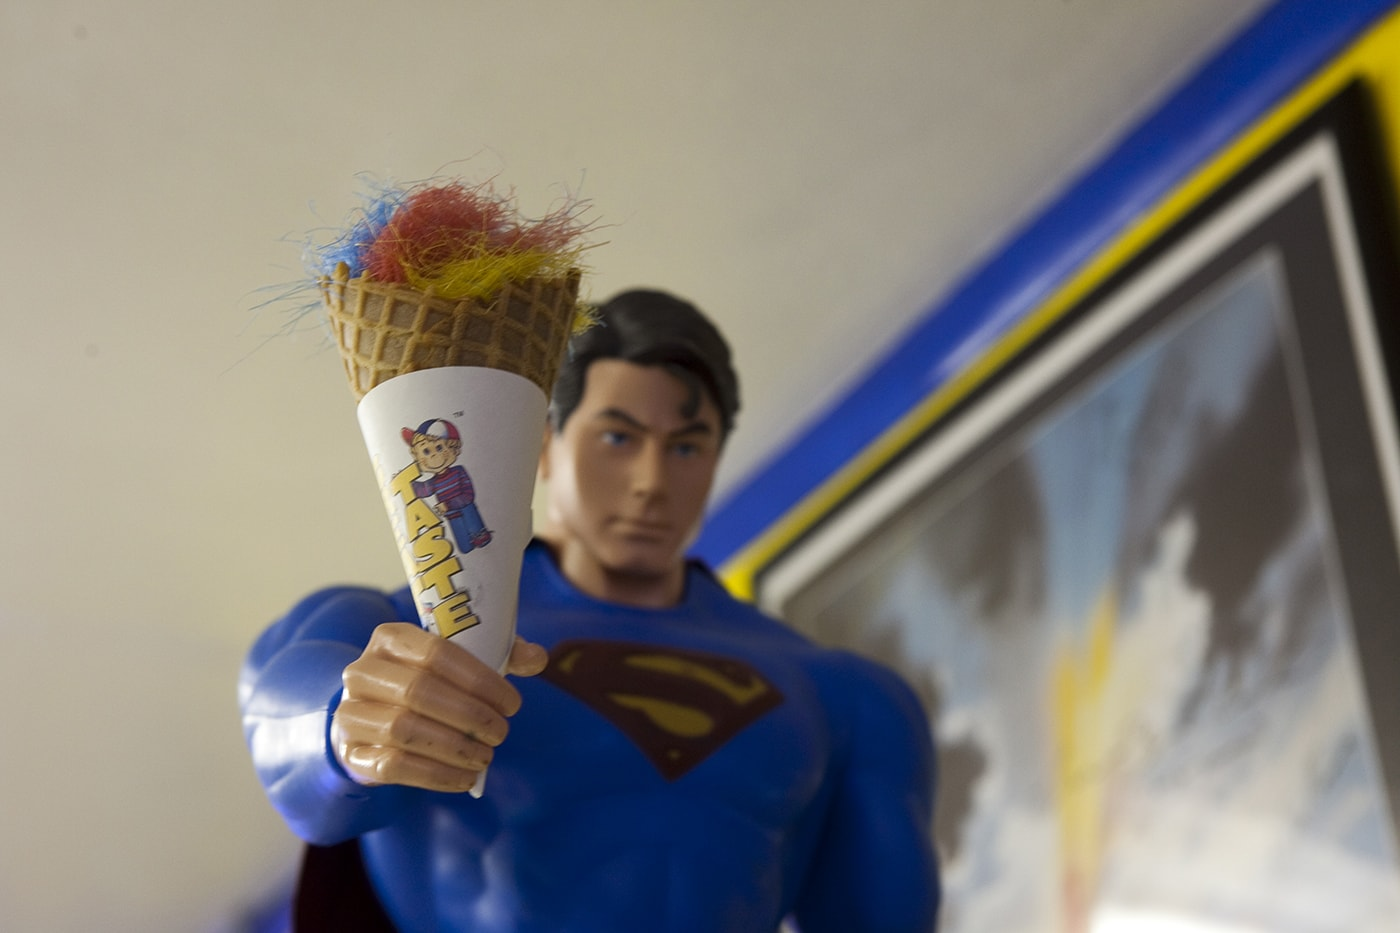 SuperTAM on 66 - Superman Memorabilia & Ice Cream in Carterville, Missouri